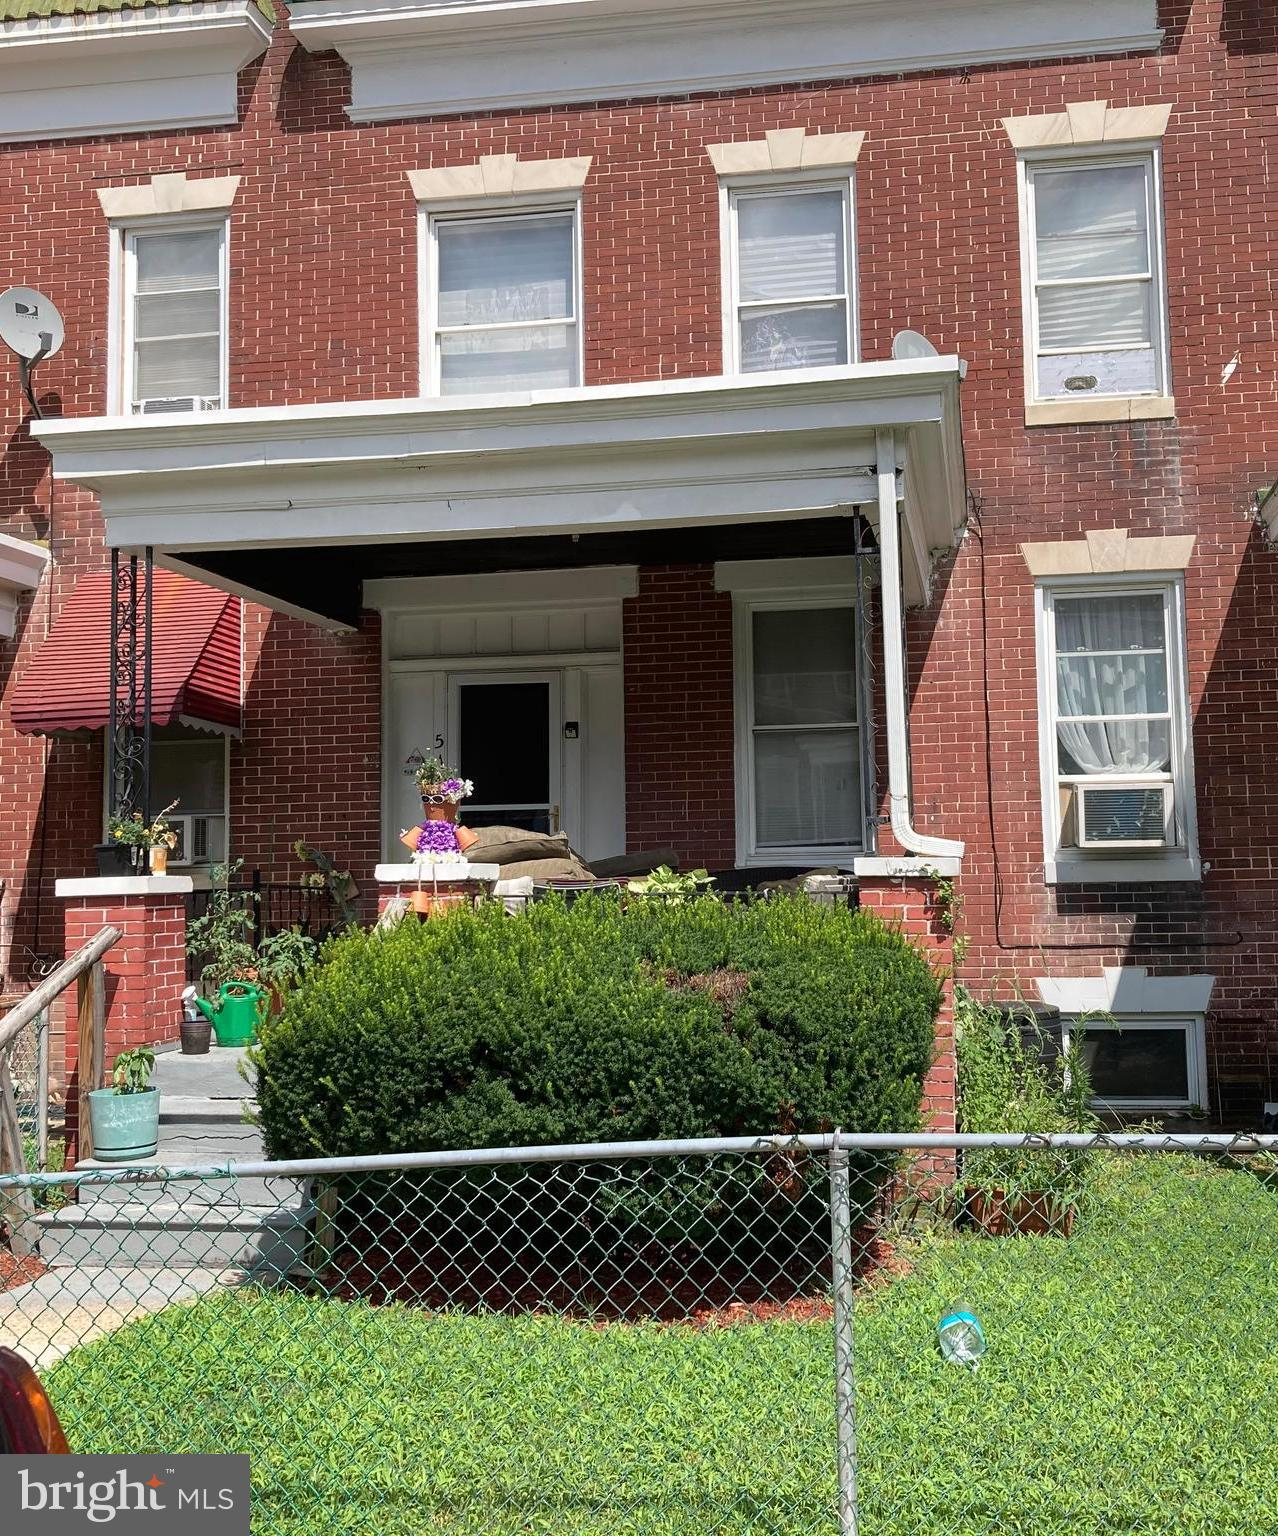 GREAT INVESTMENT OPPORTUNITY!! Large rooms and high ceilings through out. Check the comps! Four bedrooms with den, large basement waiting to be finished. Title work has been completed and cleared. Lead paint certificate. What are you waiting for?!